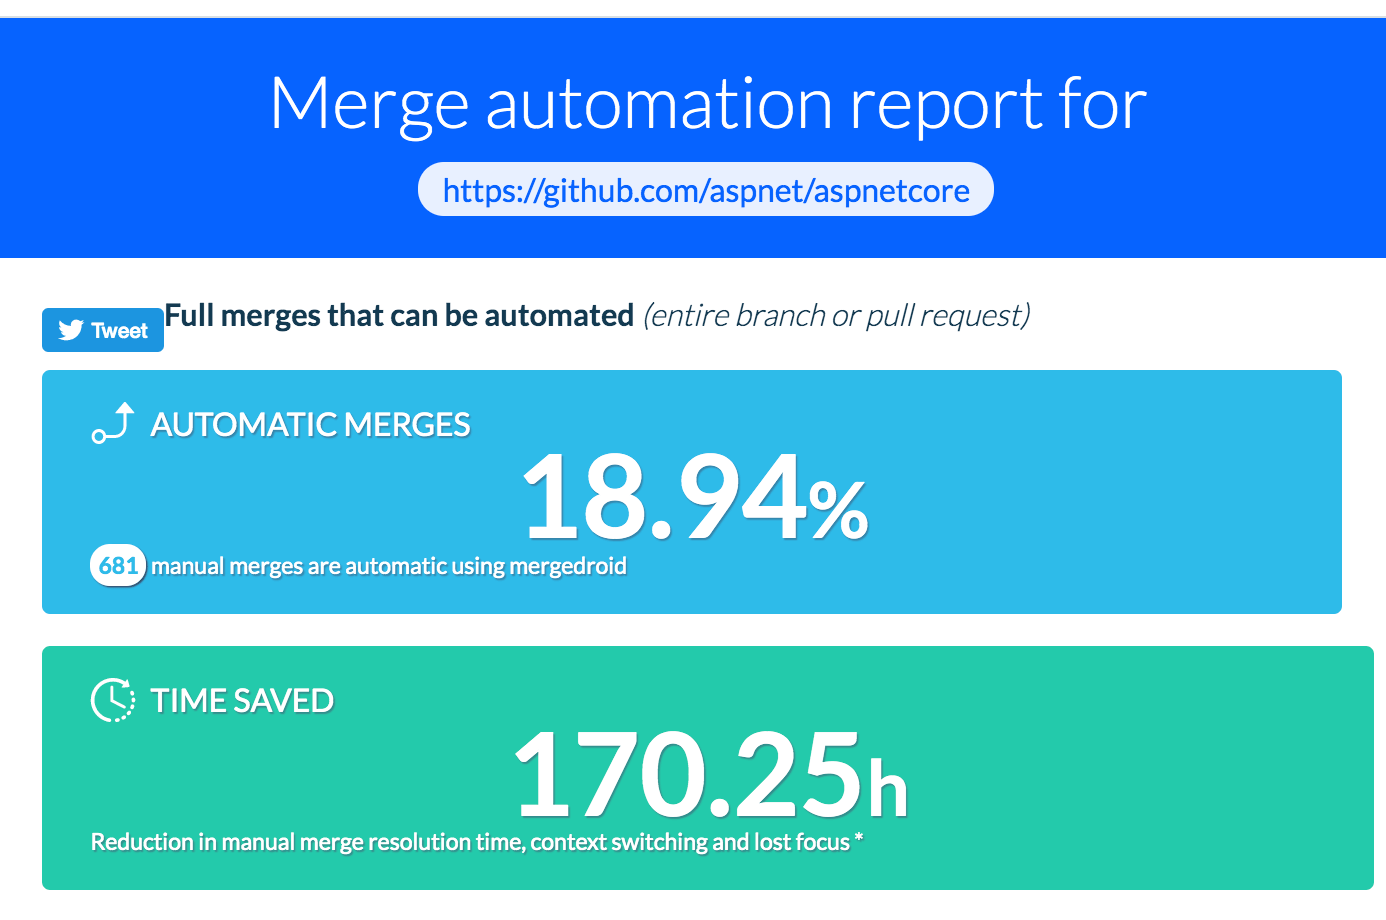 Full merges that can be automated: 18.94%, 170.25 hours saved